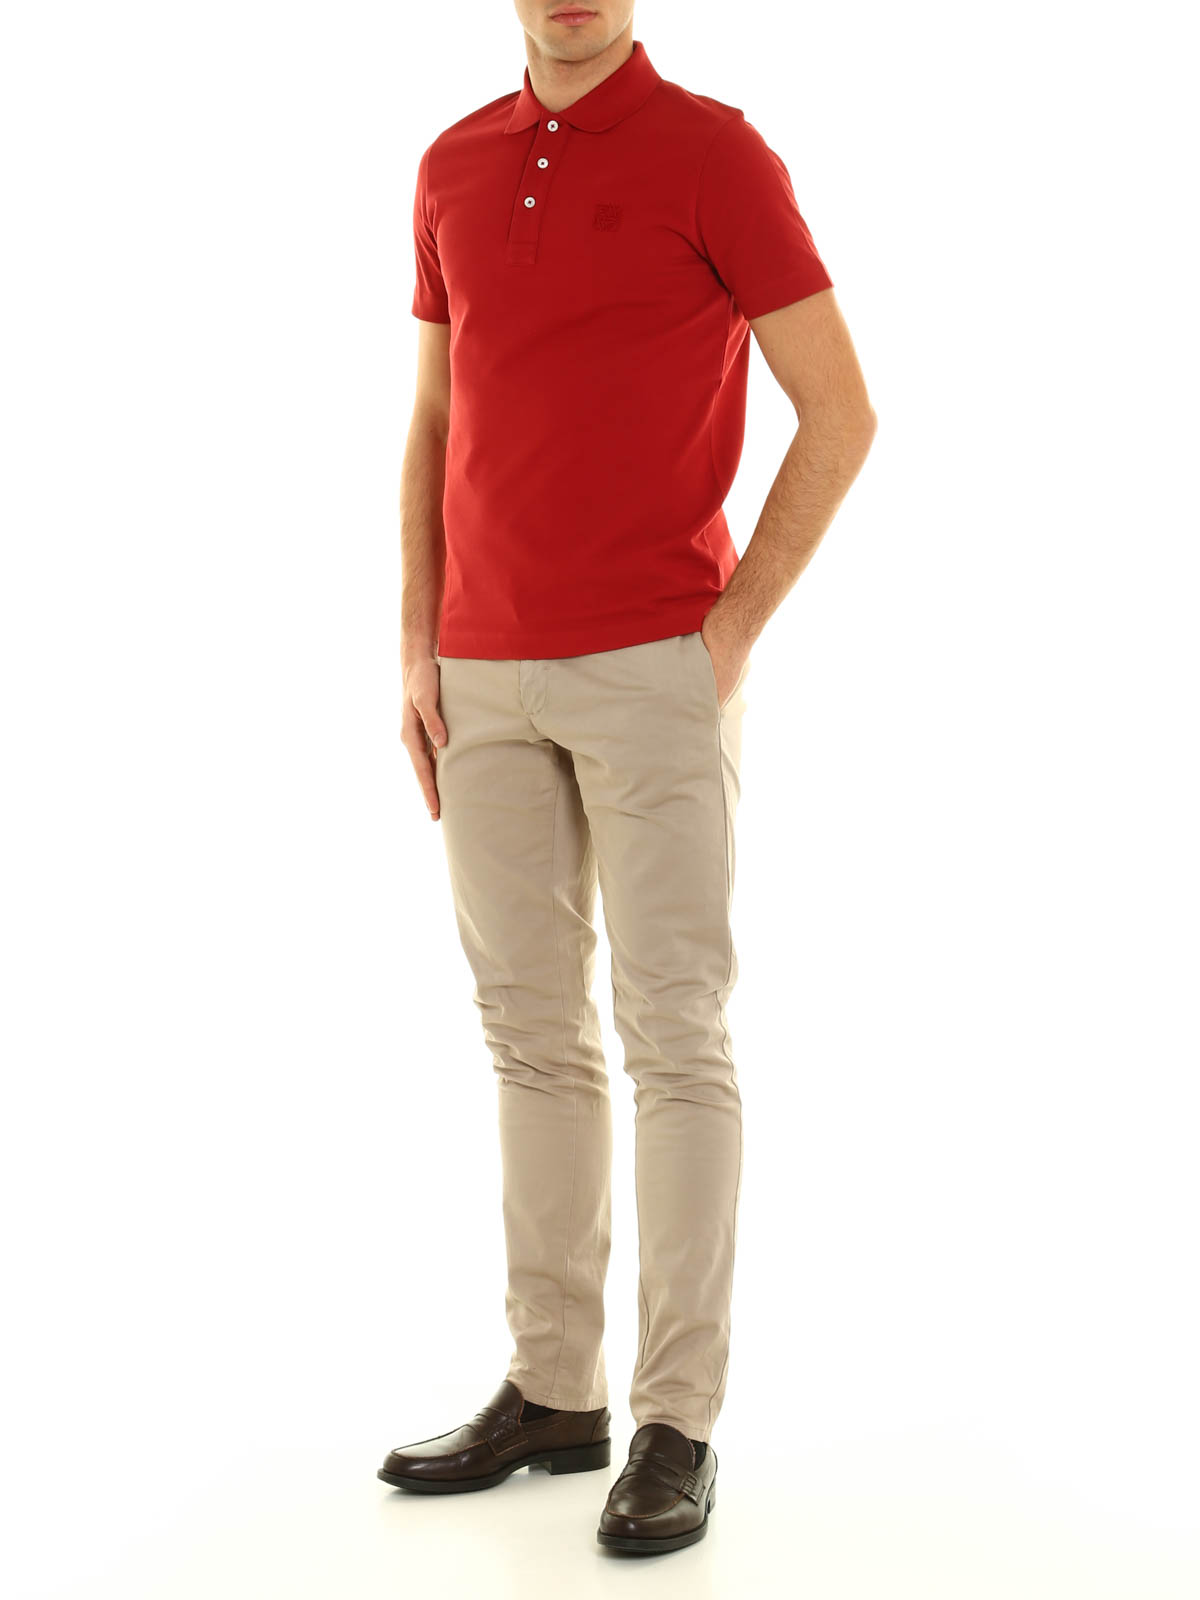 Embroidered Polo Shirts Design Online Rockwall Auction